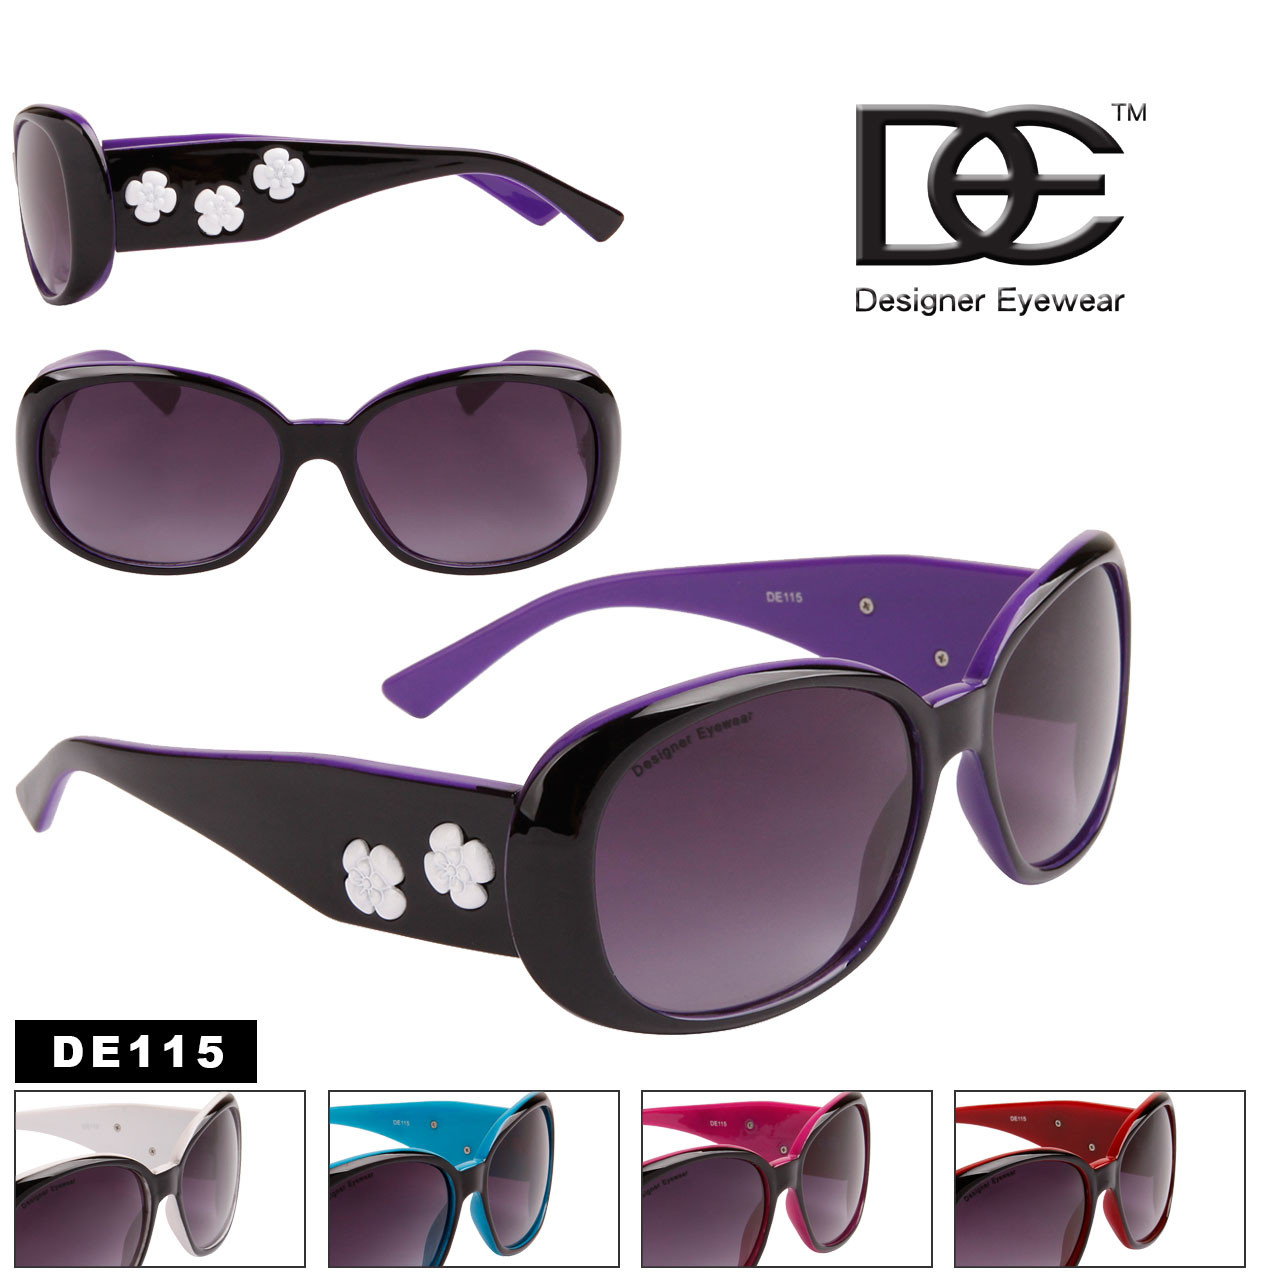 DE™ Fashion Sunglasses by the Dozen - Style #DE115